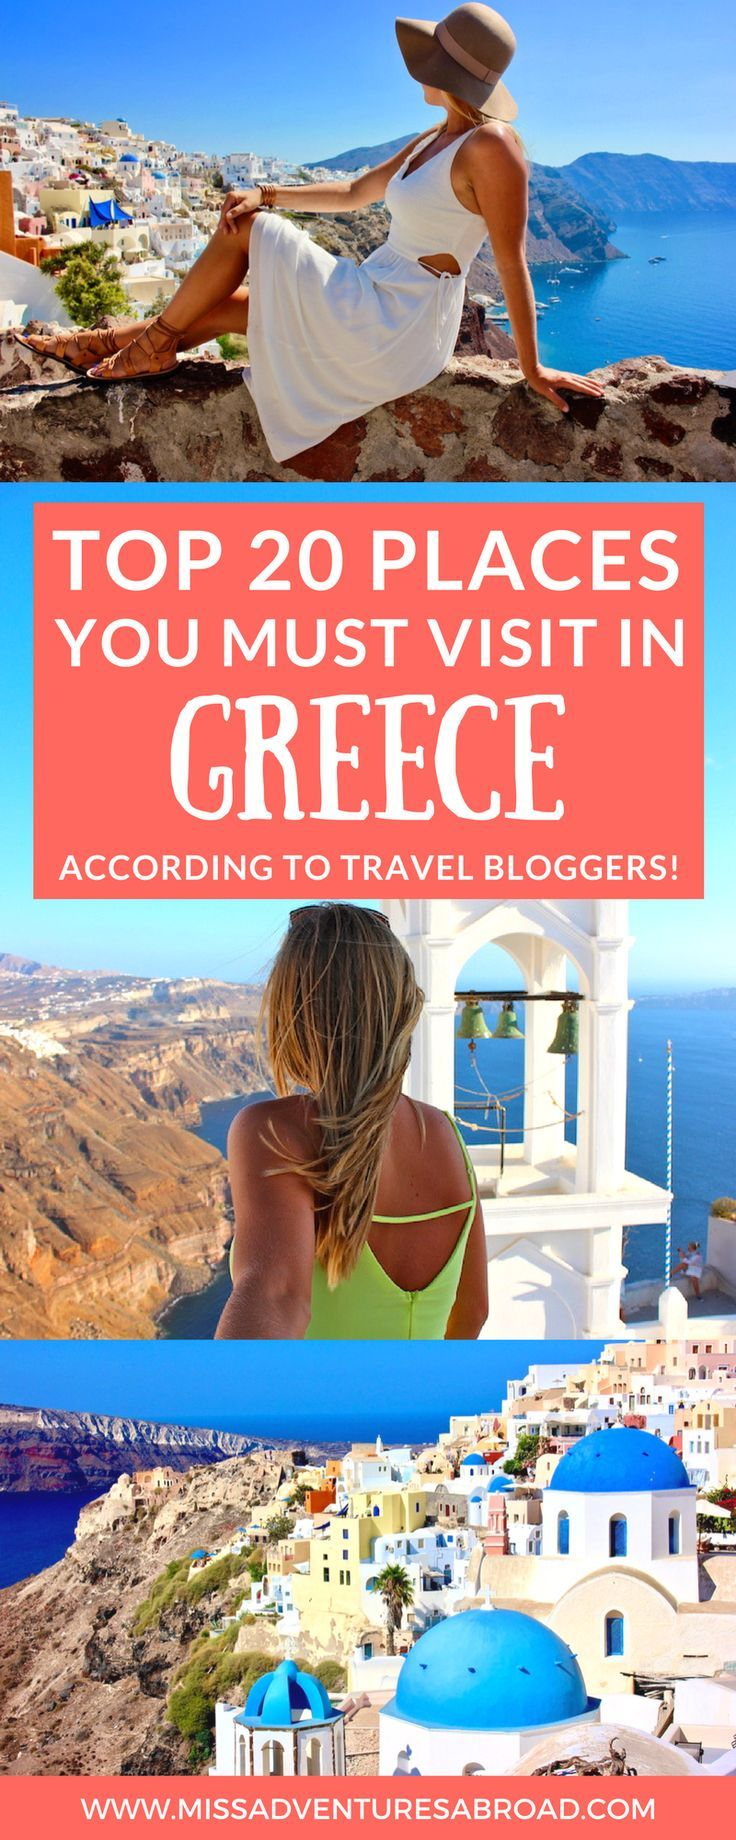 20 Stunning Destinations in Greece Travel Bloggers Love · Planning a trip to Greece but are unsure of where to go? There are so many places to travel to in Greece that it can be difficult to choose! This list includes travel bloggers' top 20 places to vis